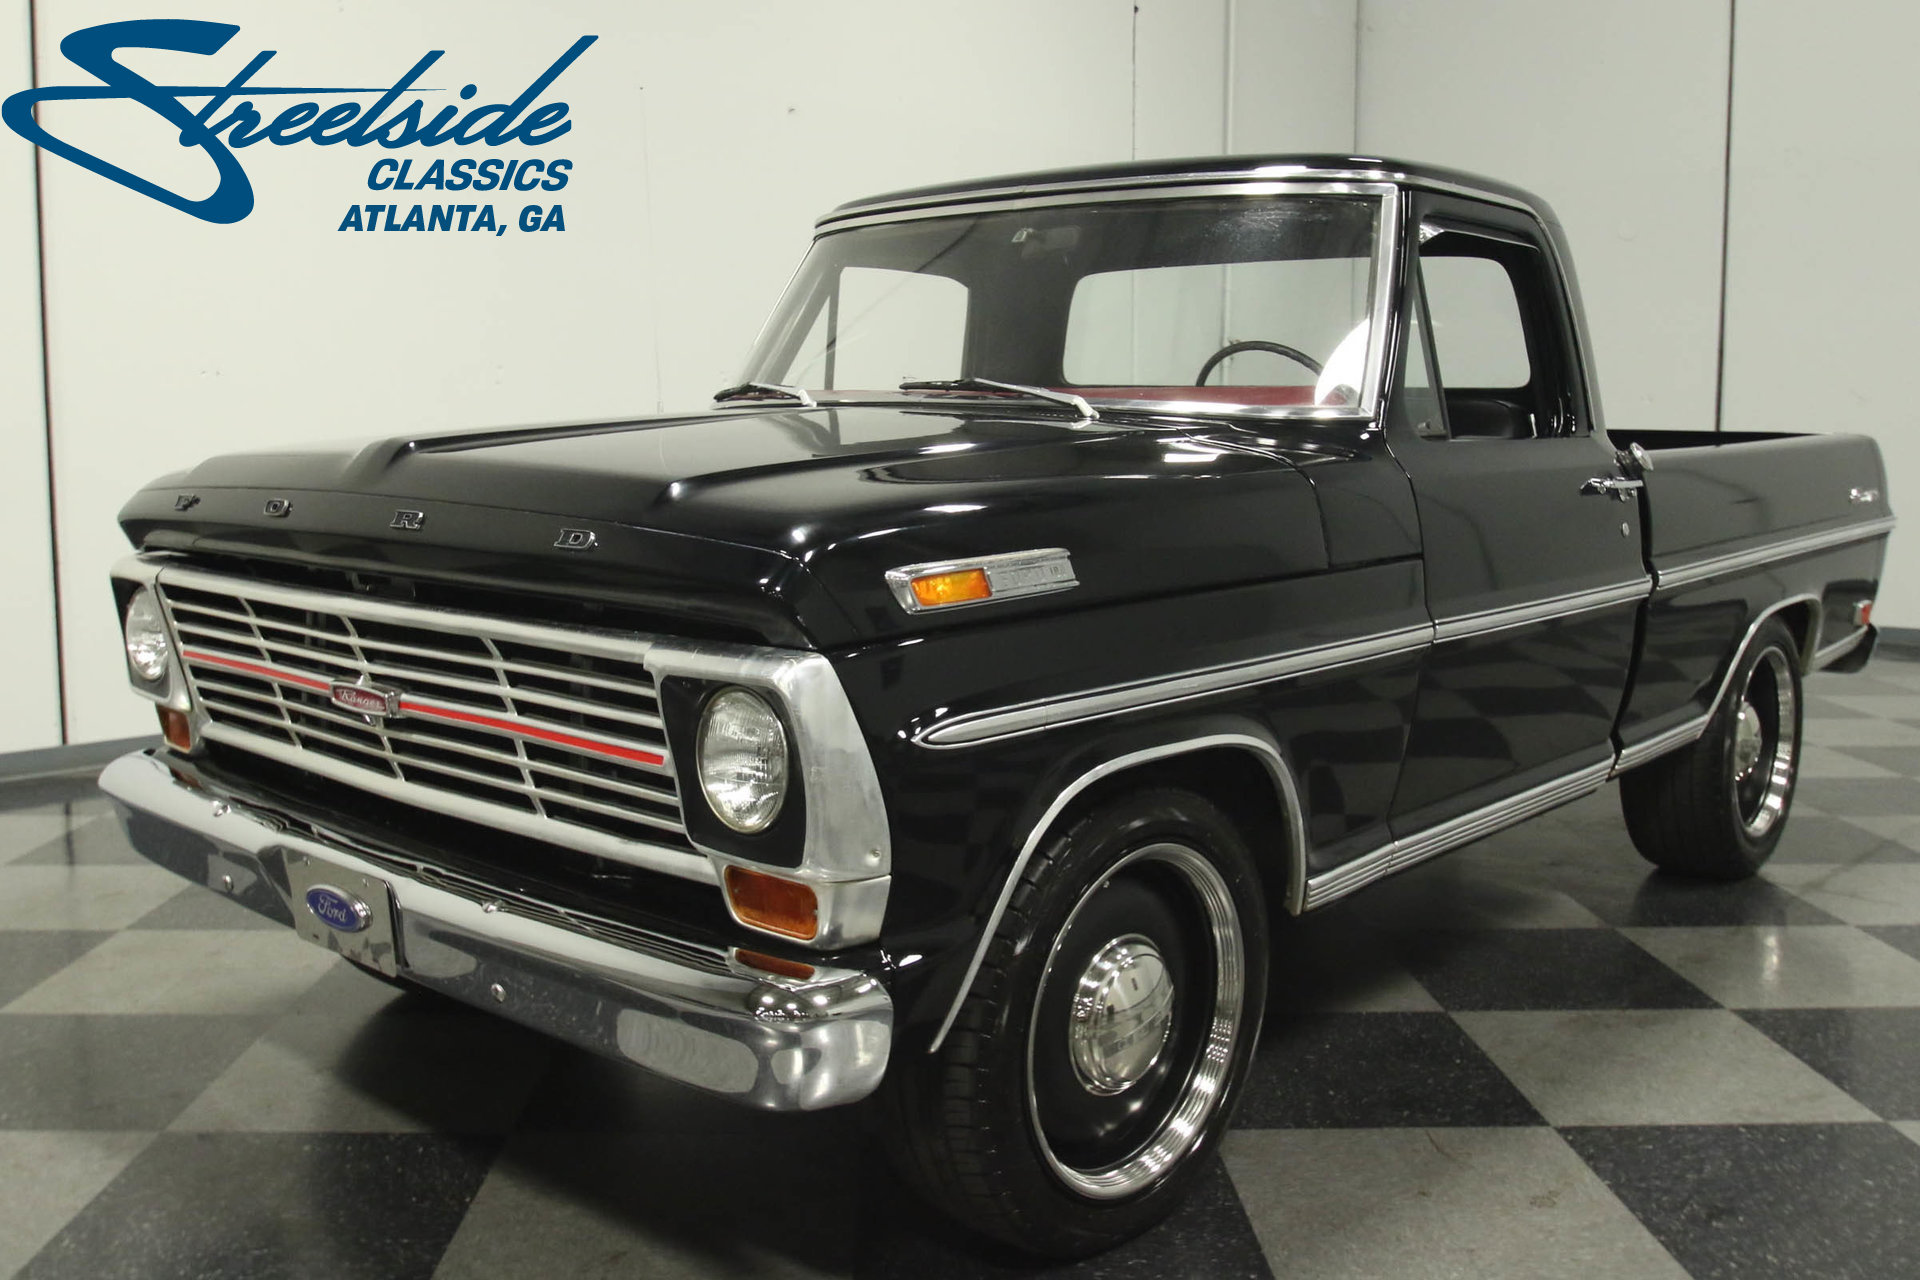 1969 Ford F 100 Streetside Classics The Nations Trusted Classic 250 Crew Cab 4x4 For Sale Show More Photos